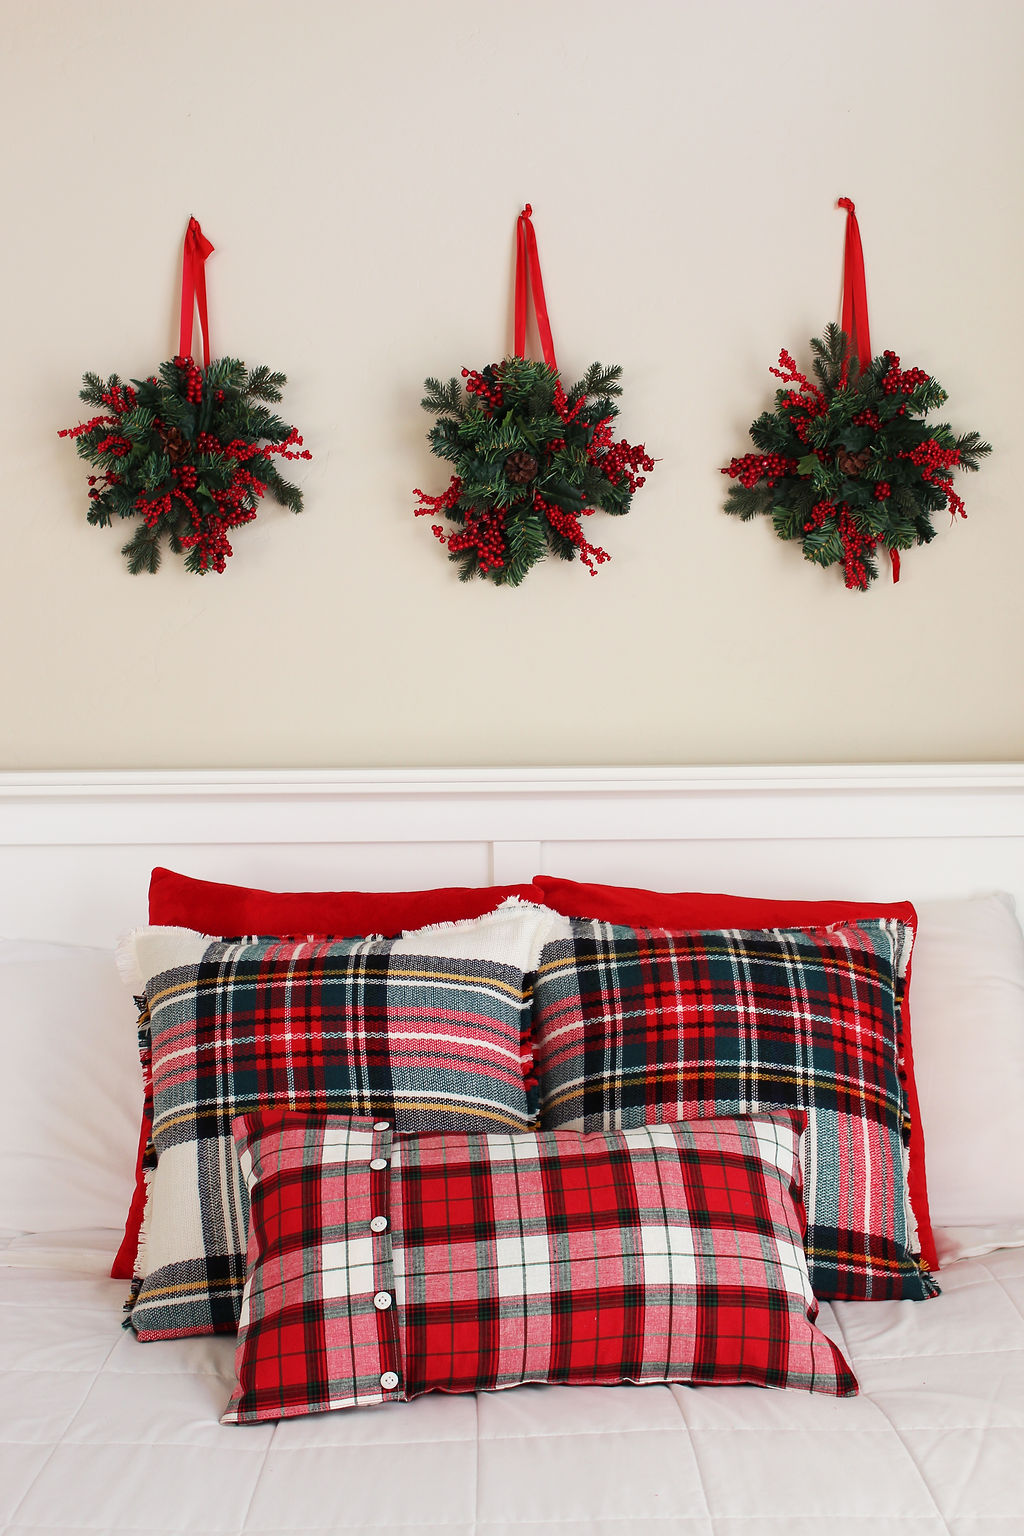 Christmas Pillows from a Scarf